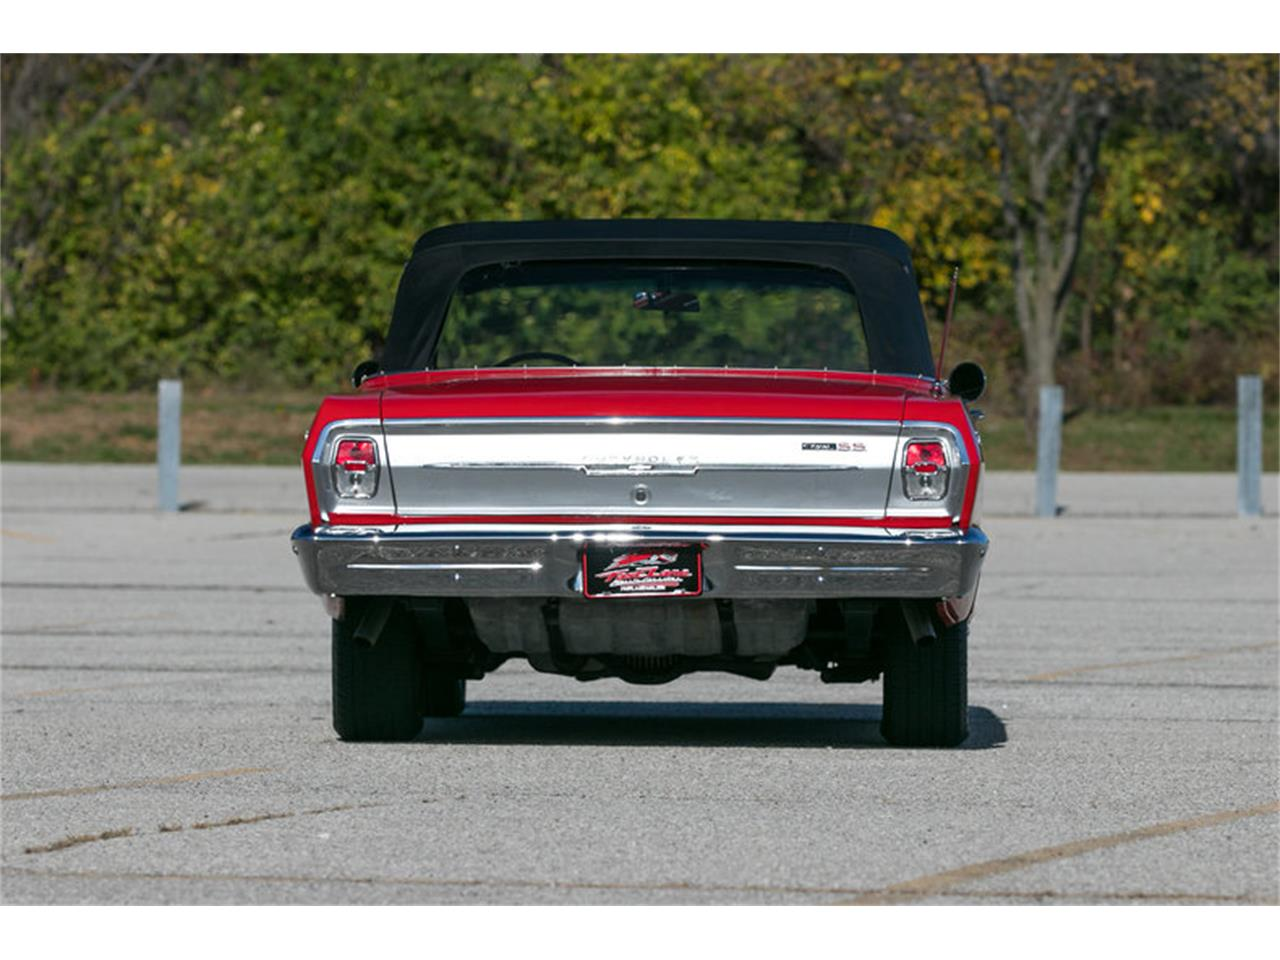 Large Picture of 1963 Chevy II Nova located in Missouri - $32,995.00 - MAT6